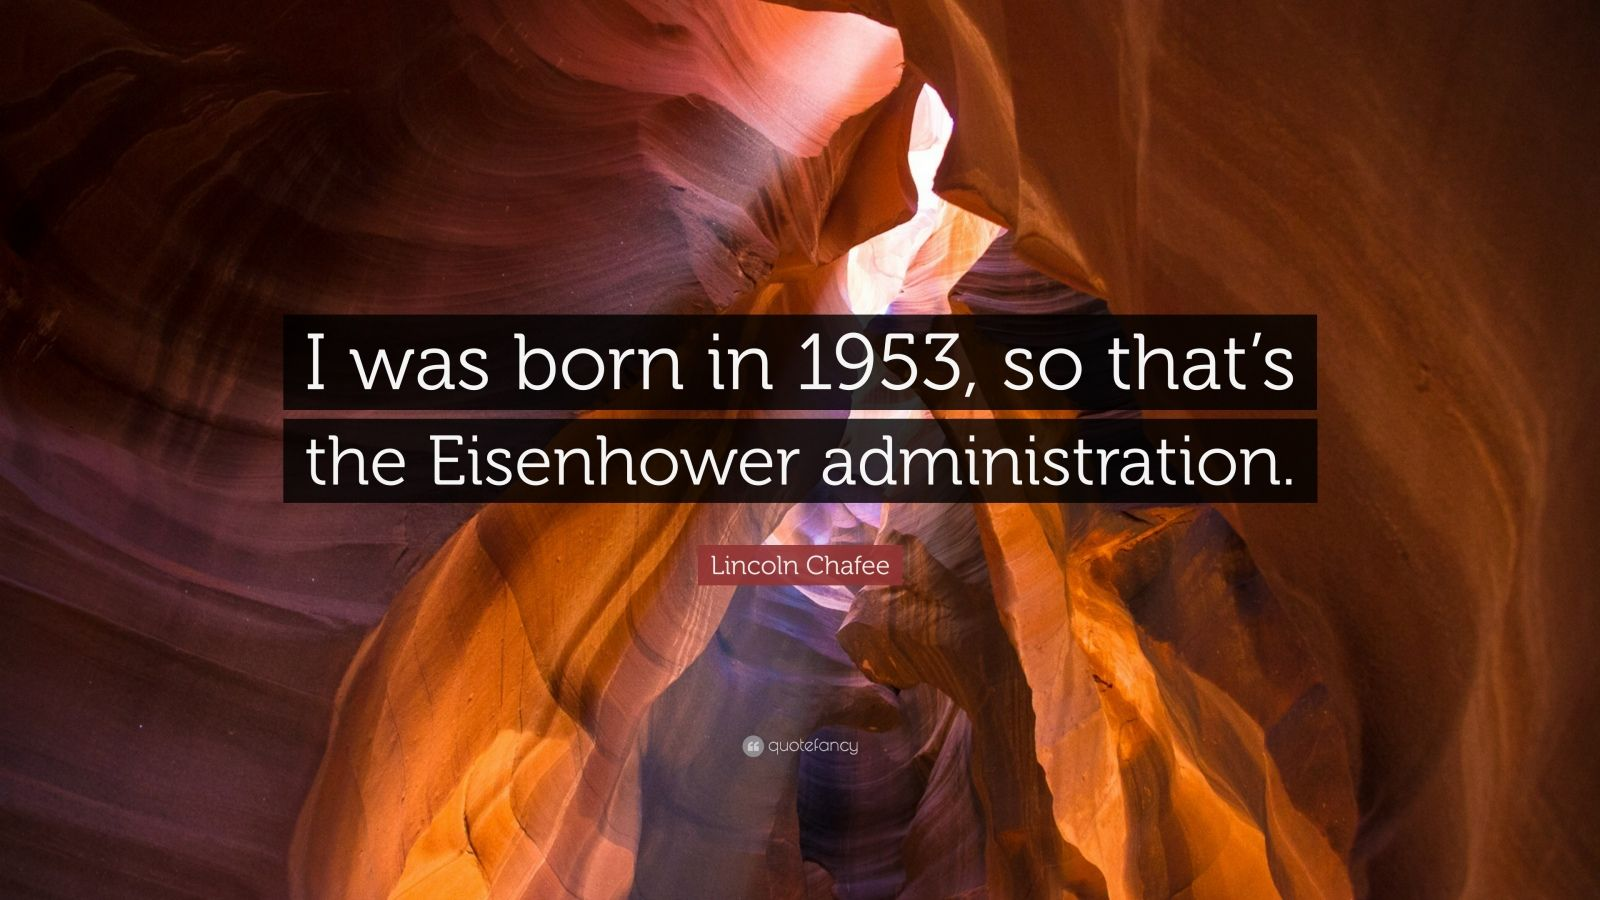 """Lincoln Chafee Quote: """"I was born in 1953, so that's the Eisenhower administration."""""""